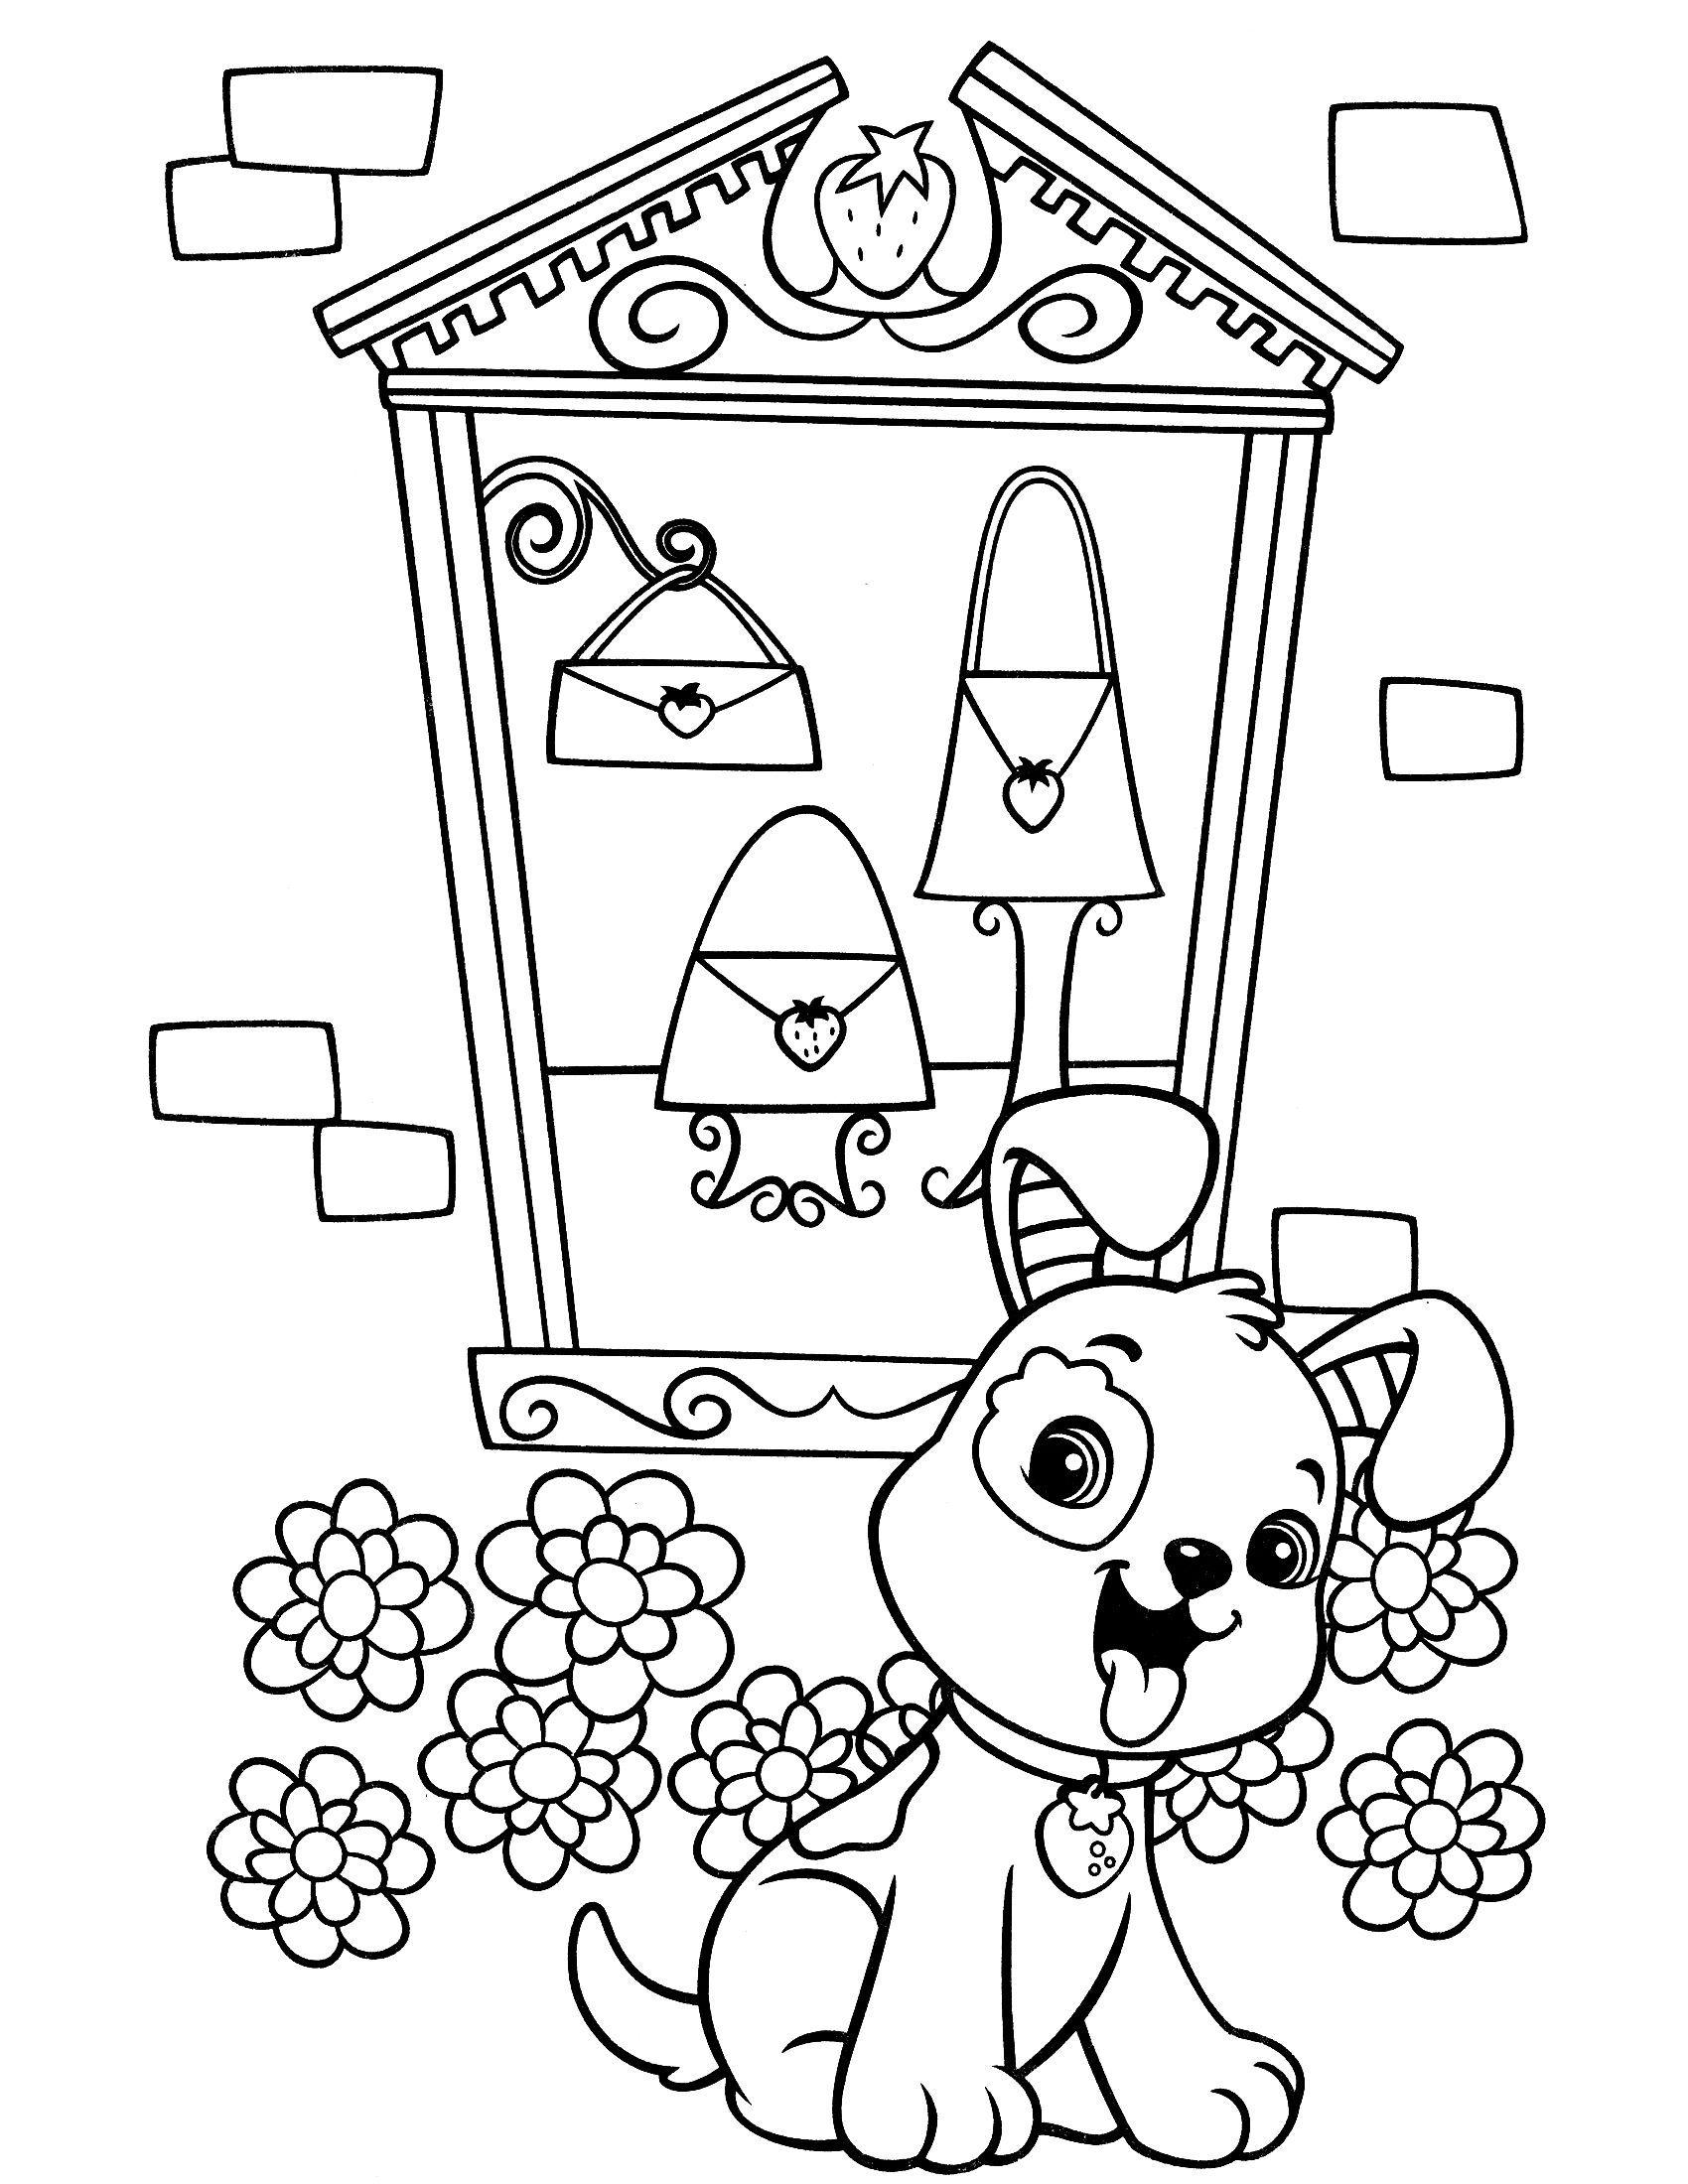 Strawberry Shortcake Coloring Page With Images